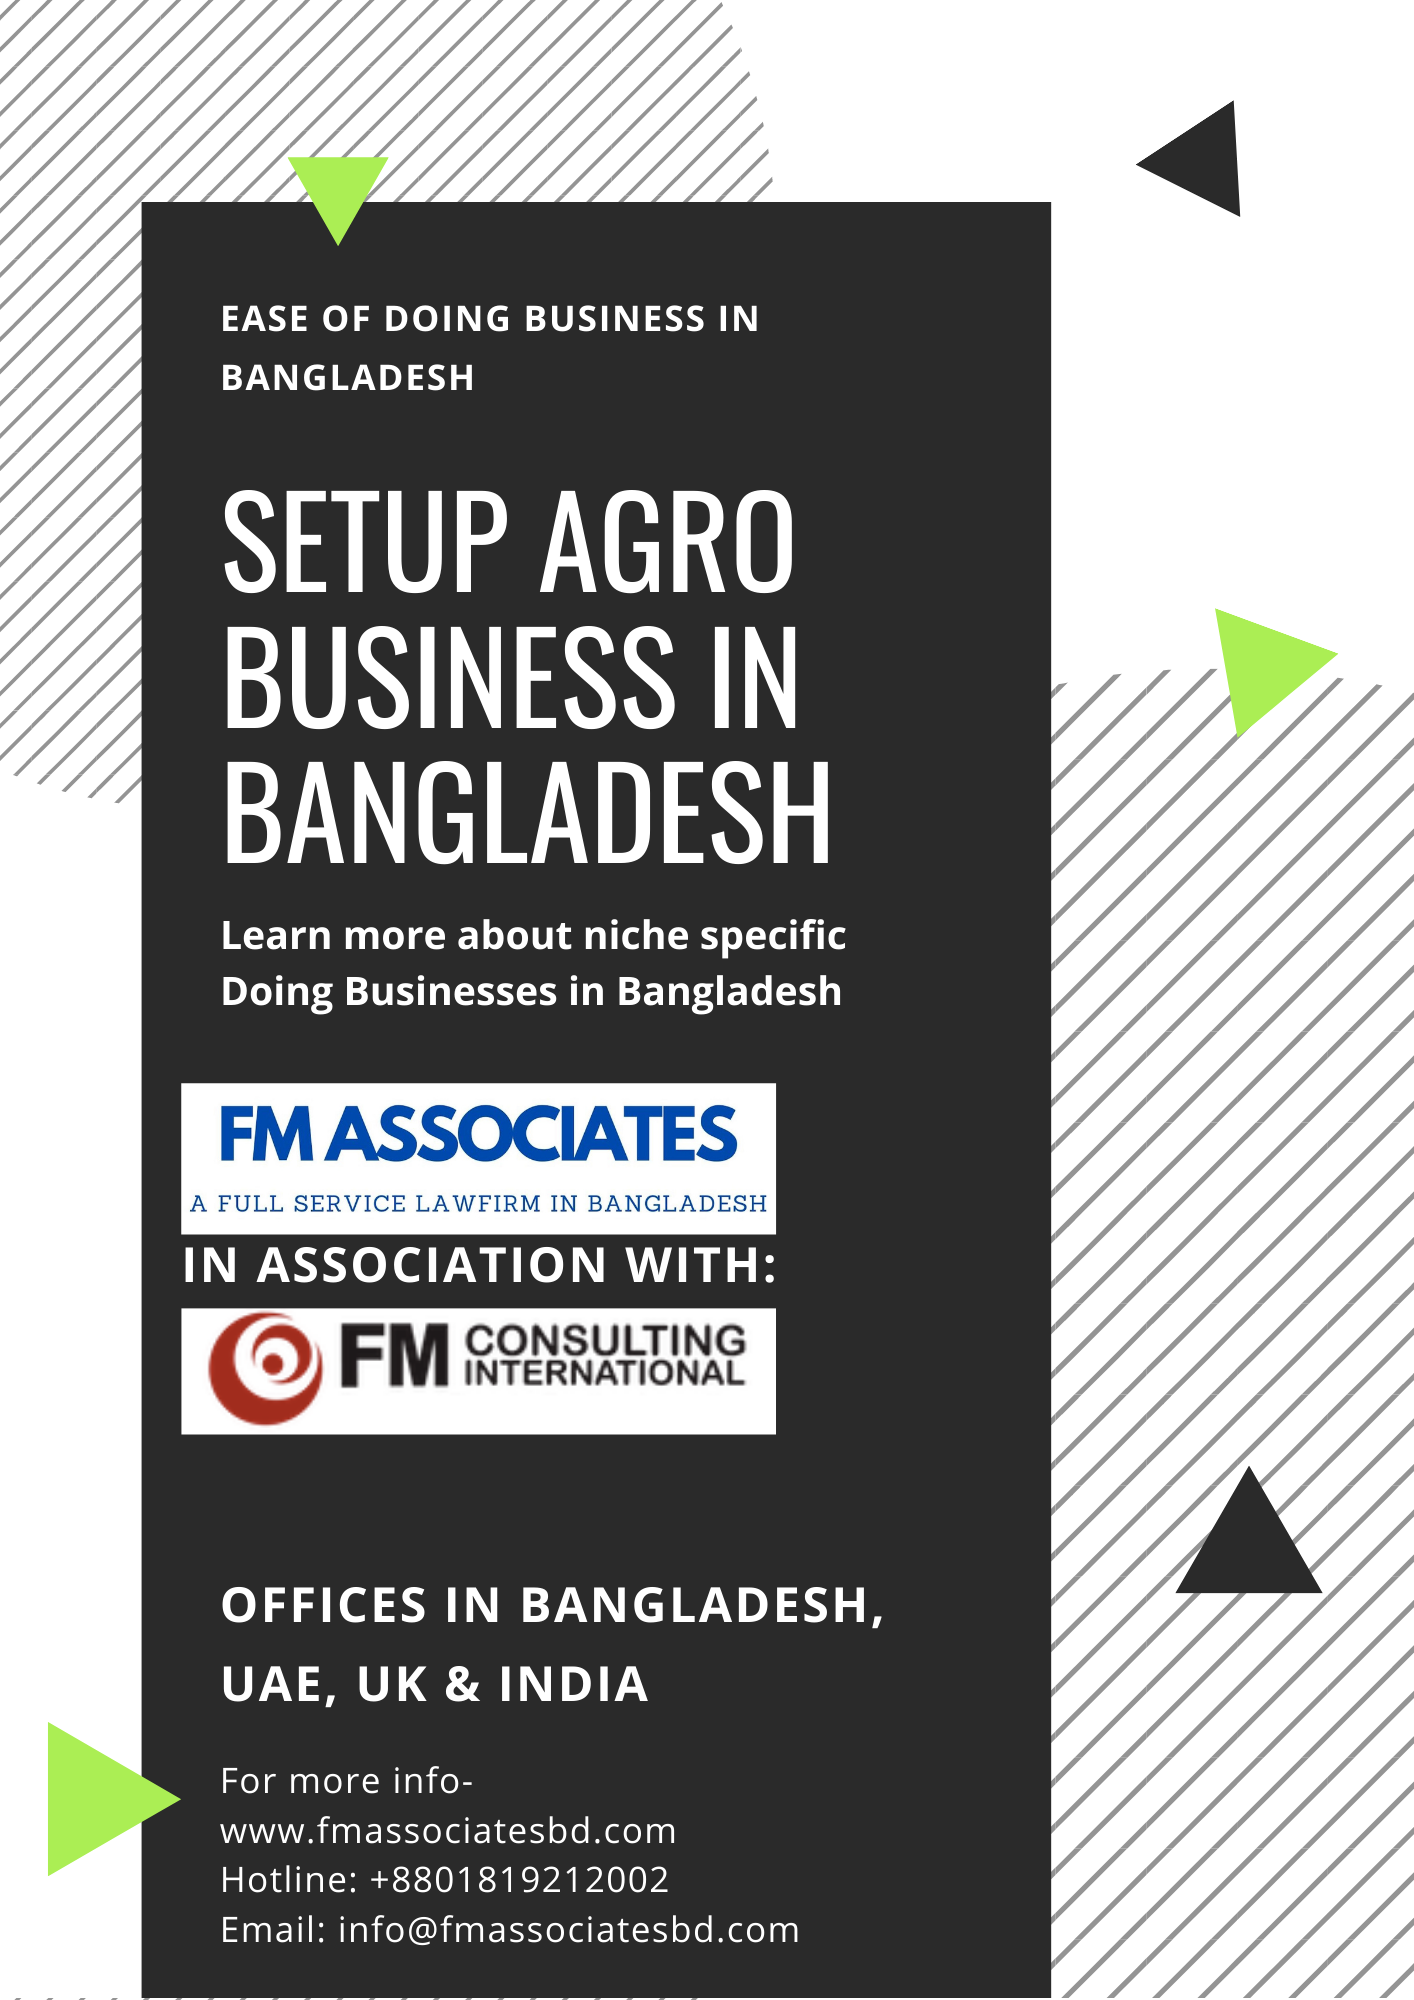 How to Setup Agro Business in Bangladesh